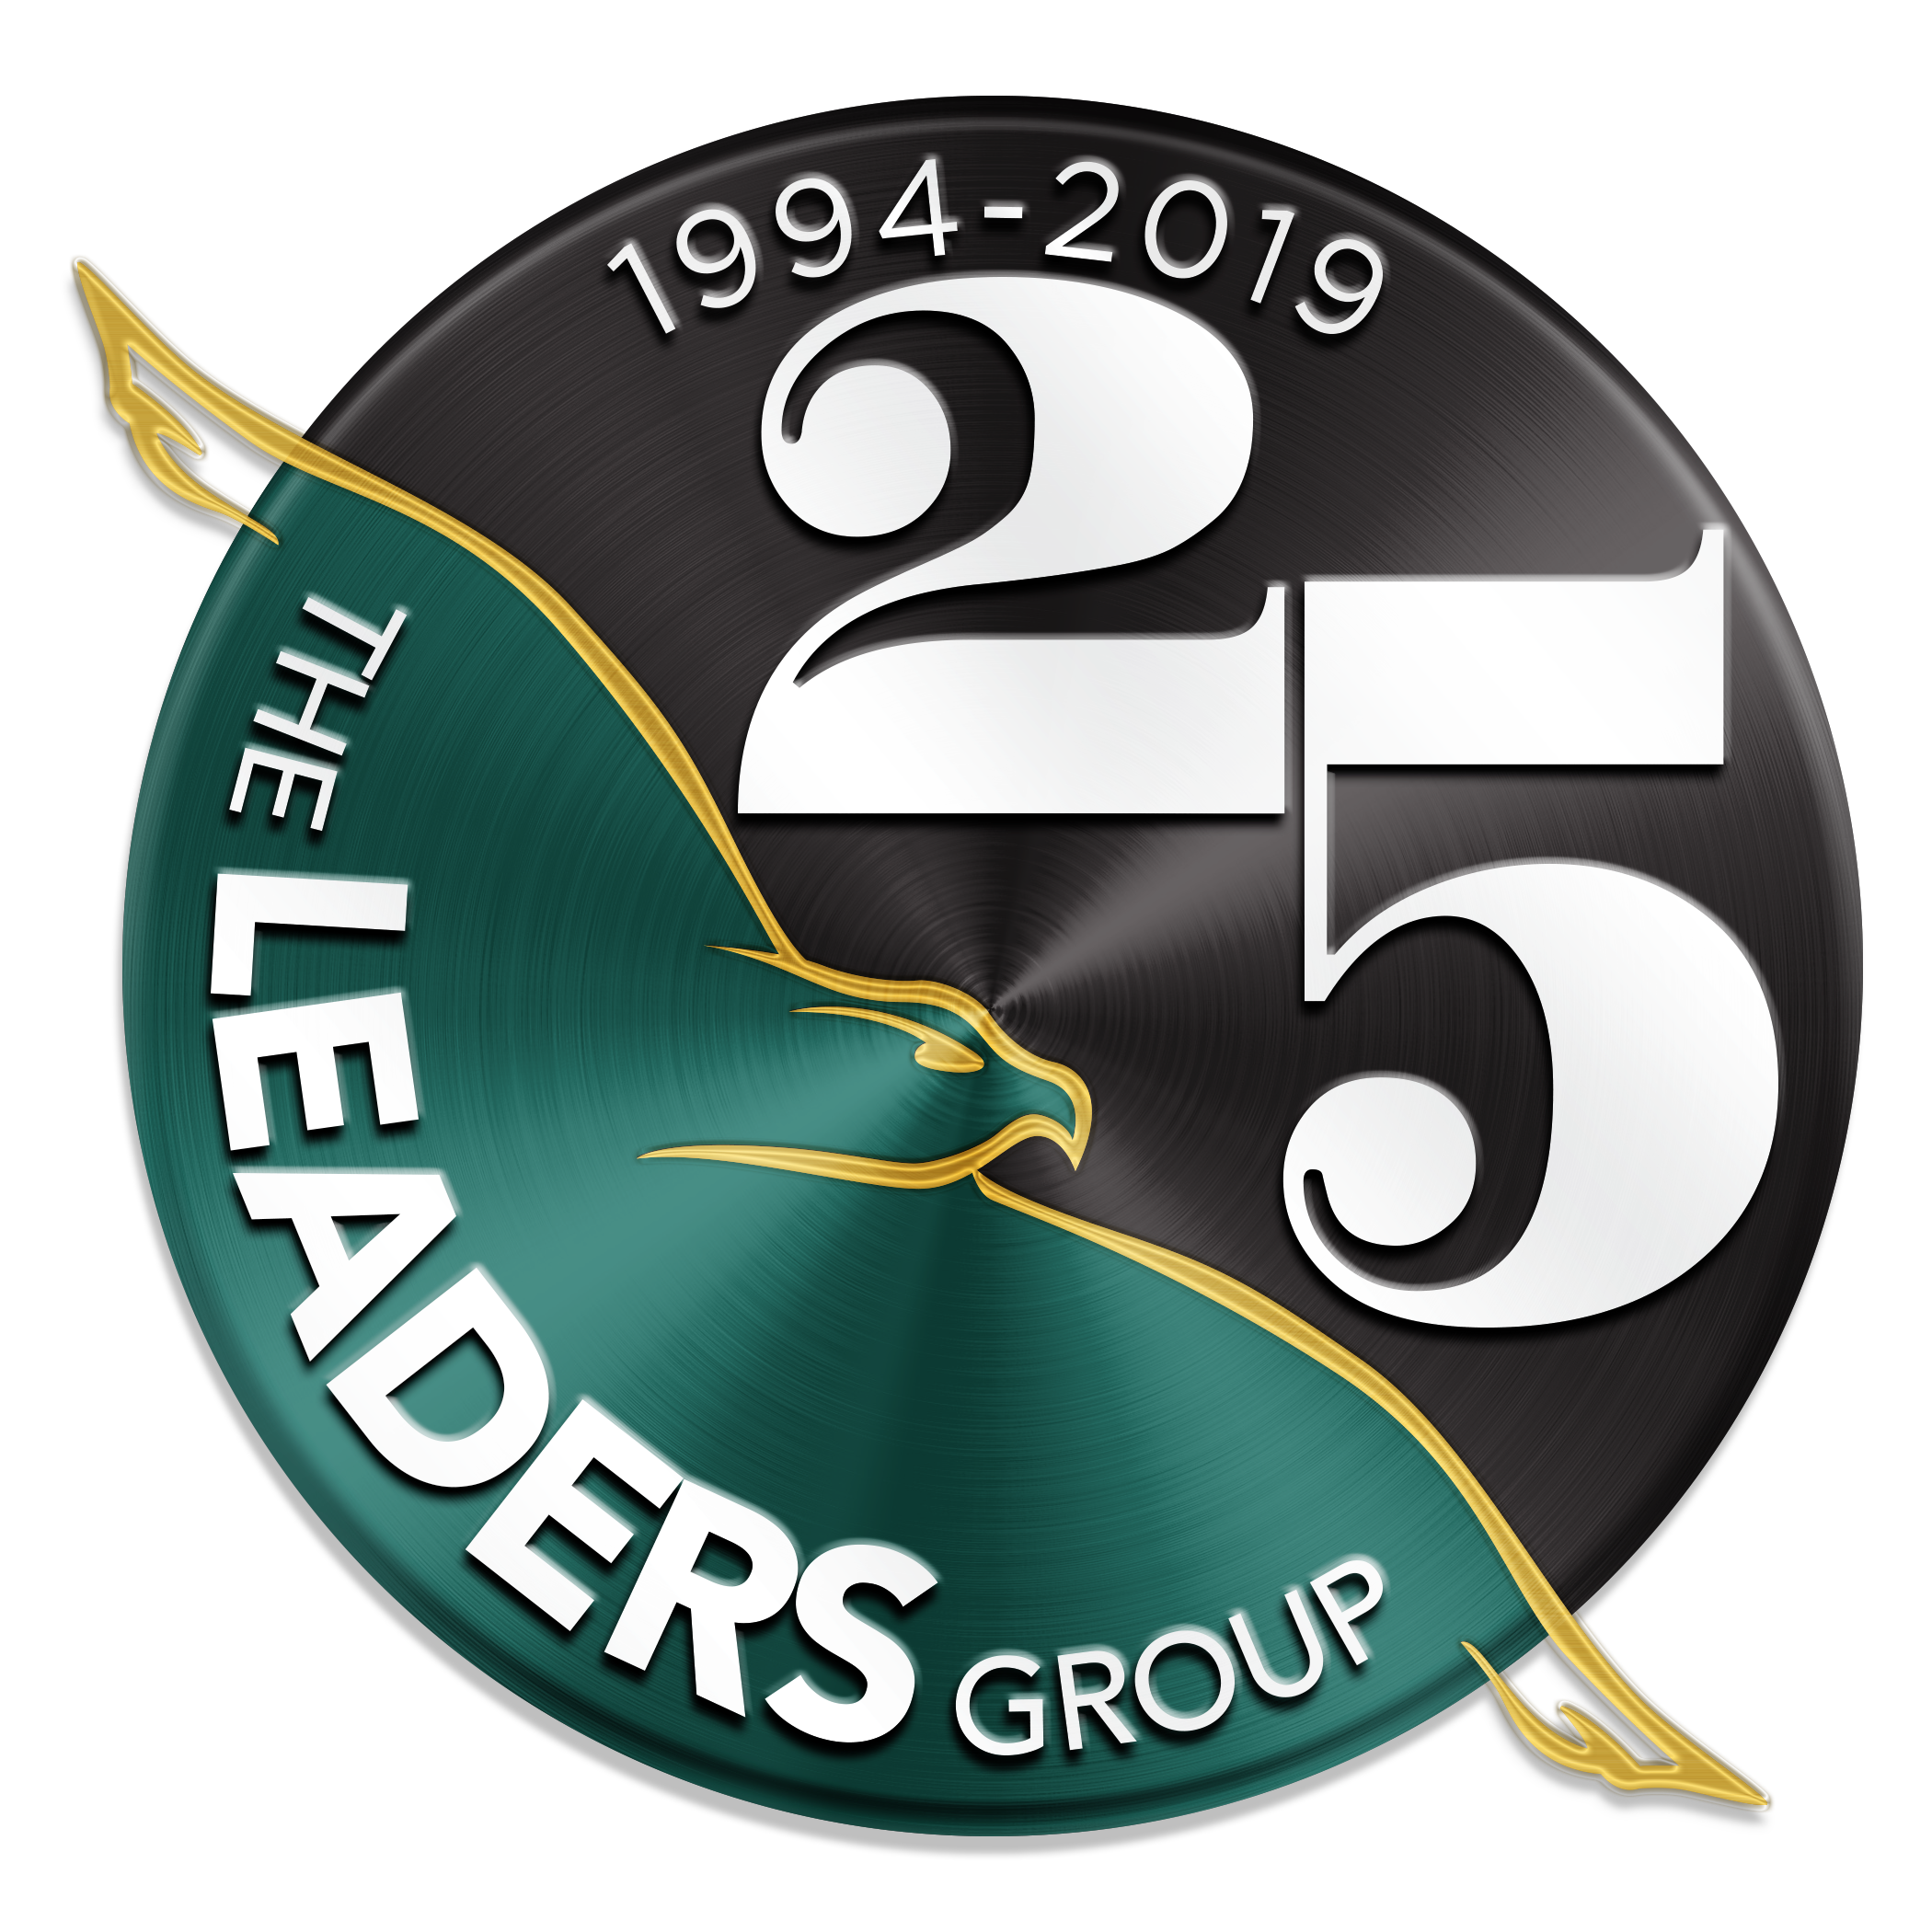 The Leaders Group logo